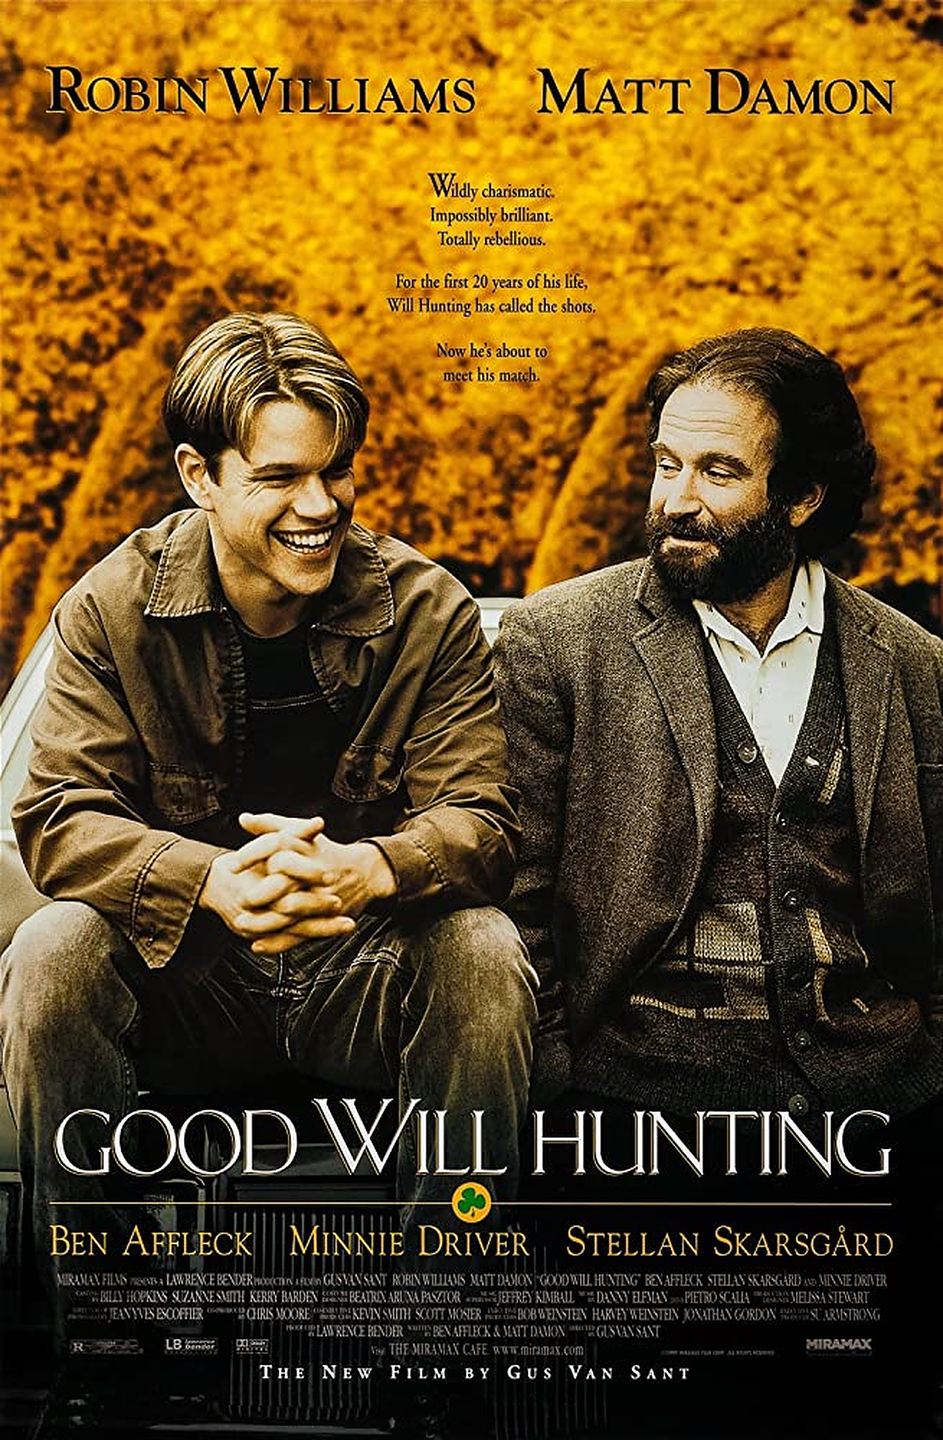 """<p>The late <strong>Robin Williams</strong> plays therapist Sean Maguire, who mentors Will Hunting (<strong>Matt Damon</strong>), an unassuming genius. After Will gets in trouble for attacking a police officer, Sean teaches Will valuable life lessons. We guarantee you'll experience all sorts of emotions while watching this film.</p><p><a class=""""link rapid-noclick-resp"""" href=""""https://www.amazon.com/Good-Will-Hunting-Ben-Affleck/dp/B006RXPT82/ref=sr_1_2?dchild=1&keywords=GOOD+WILL+HUNTING&qid=1596922850&sr=8-2&tag=syn-yahoo-20&ascsubtag=%5Bartid%7C10055.g.33513354%5Bsrc%7Cyahoo-us"""" rel=""""nofollow noopener"""" target=""""_blank"""" data-ylk=""""slk:WATCH NOW"""">WATCH NOW</a></p>"""